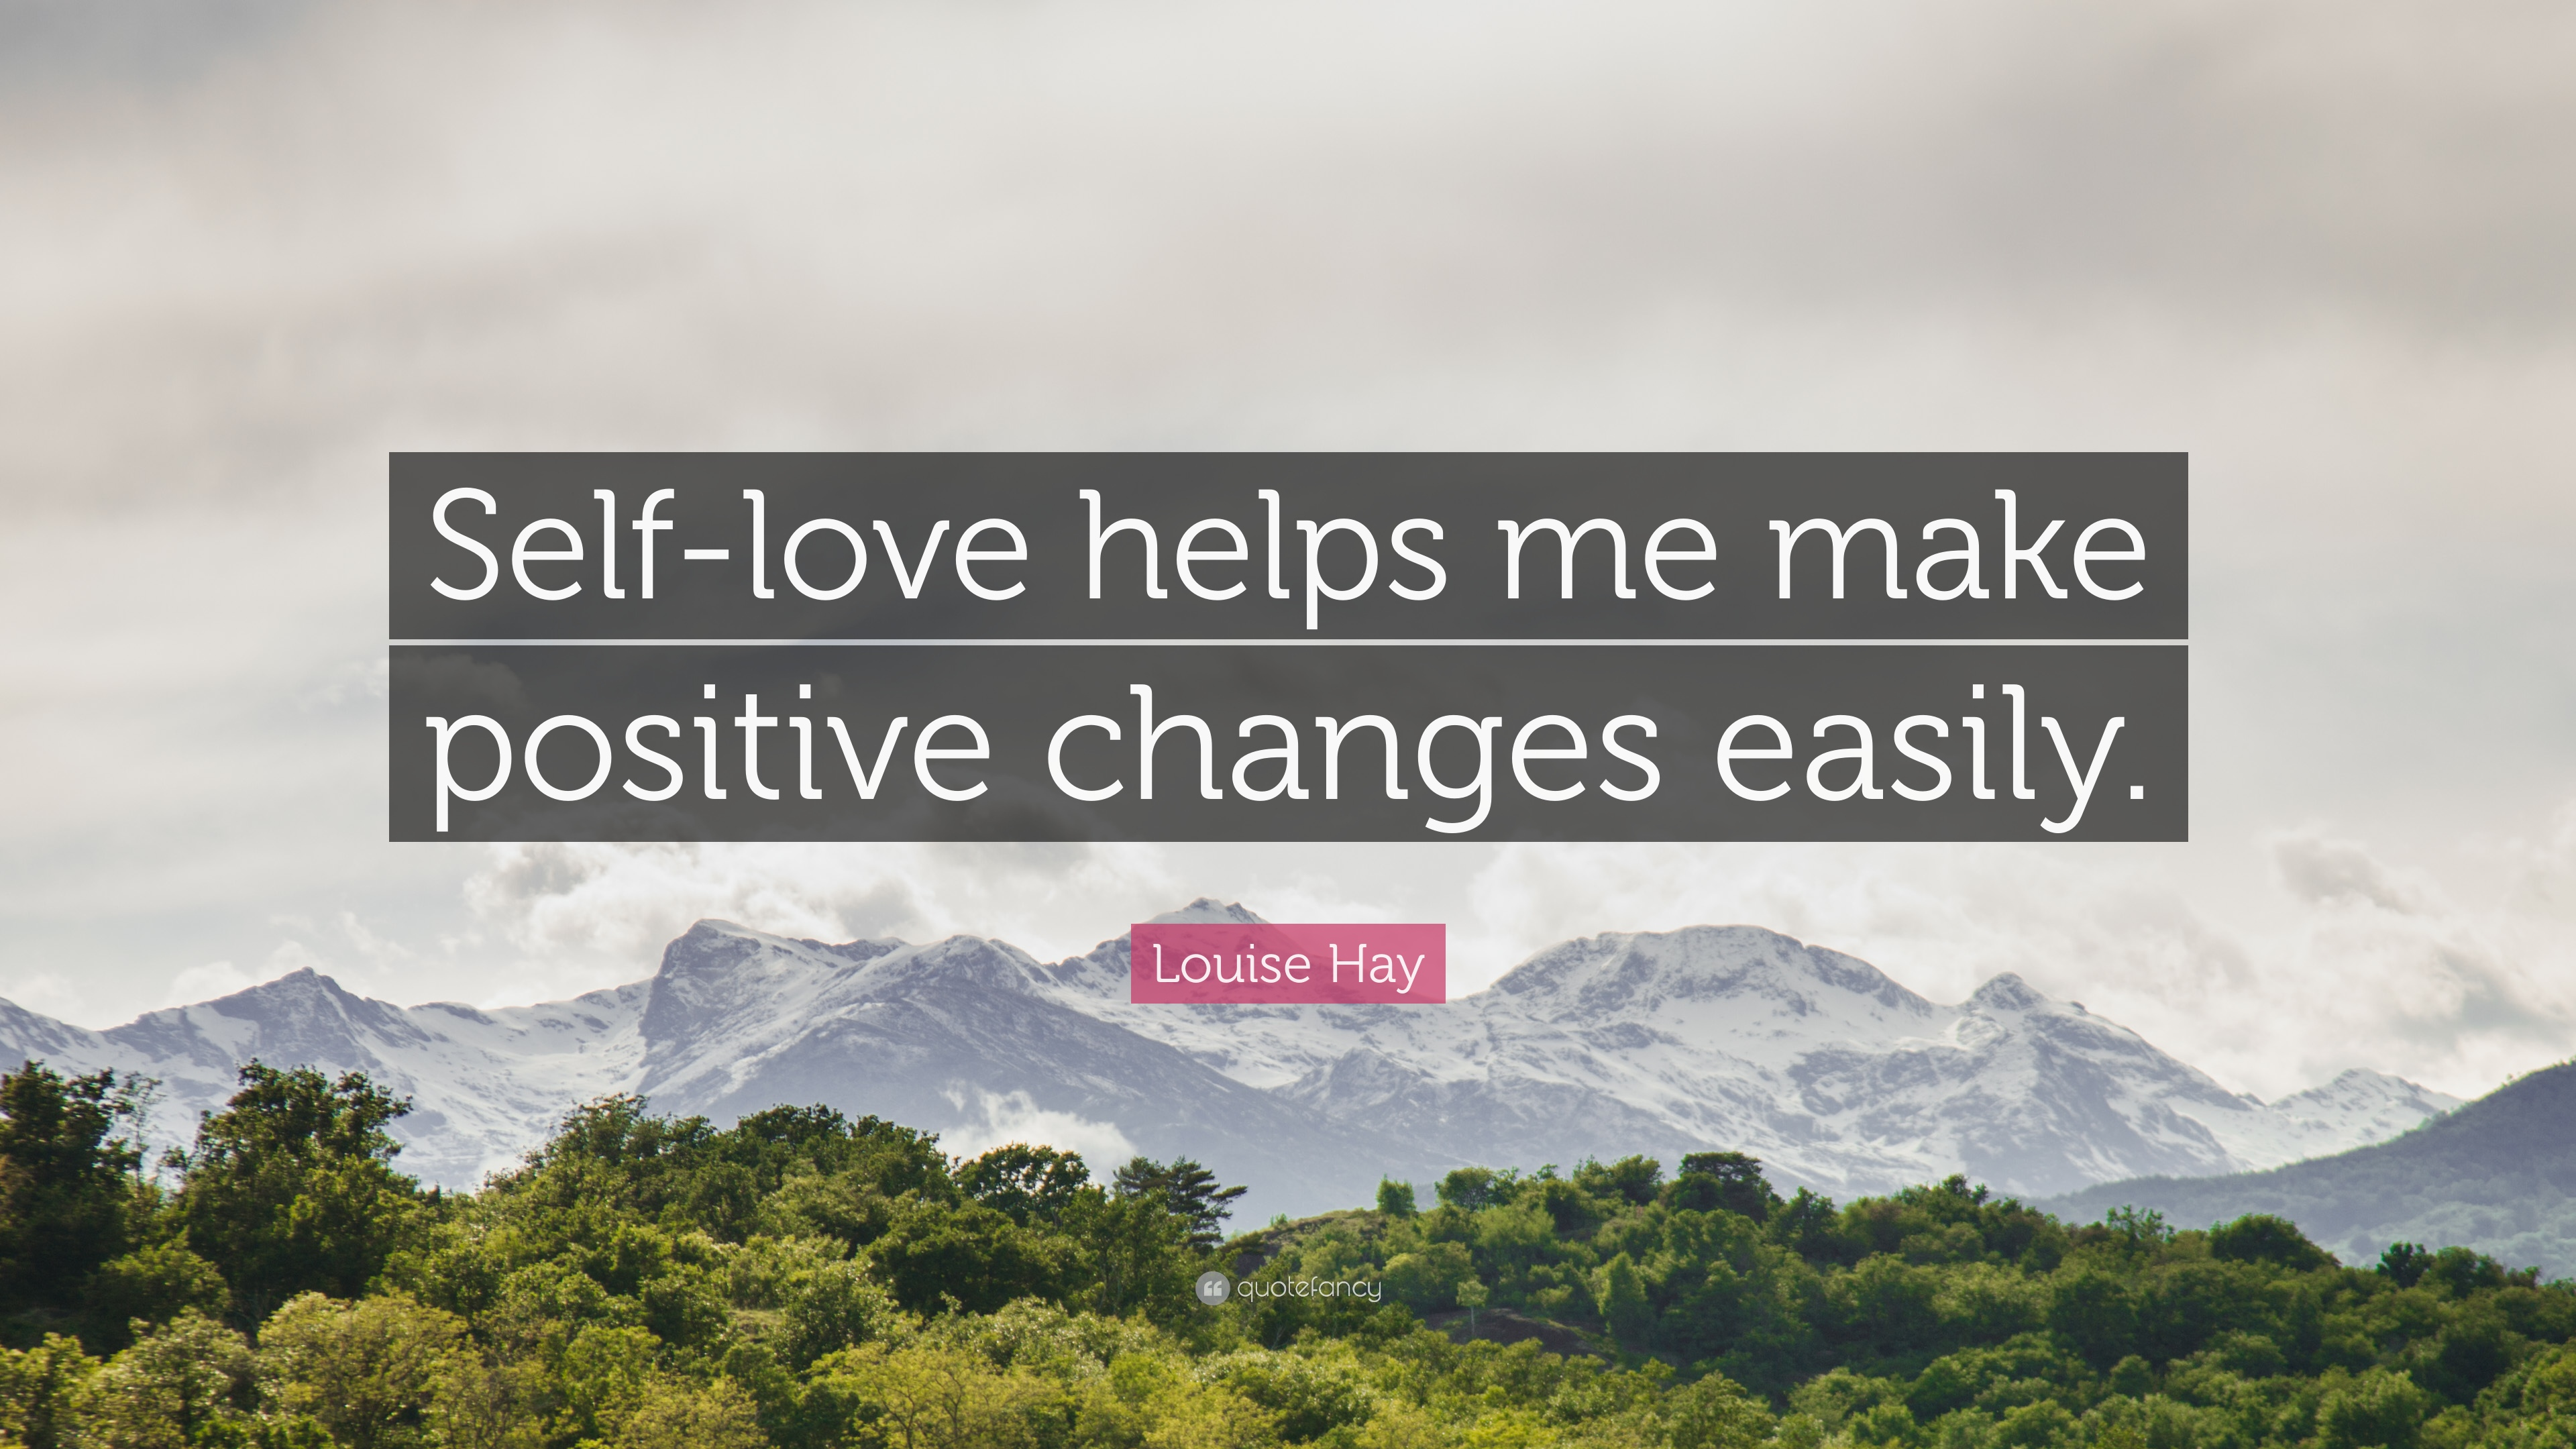 Louise Hay Positive Quotes Facebook thumbnail